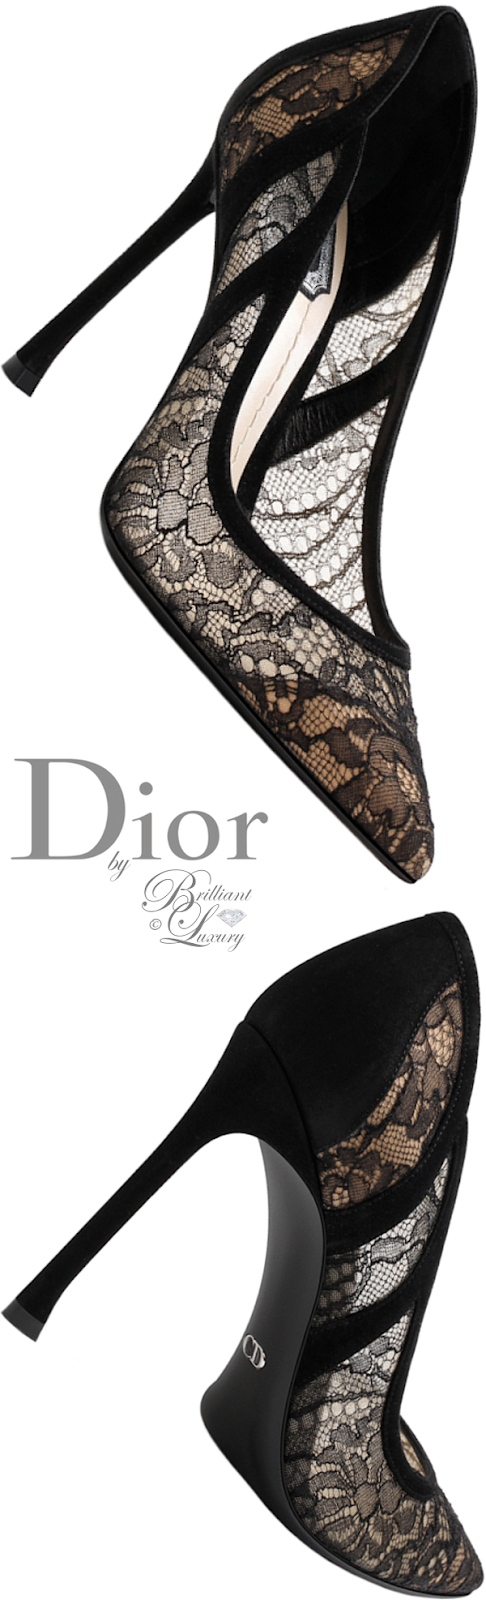 Brilliant Luxury ♦ Dior black lace pump